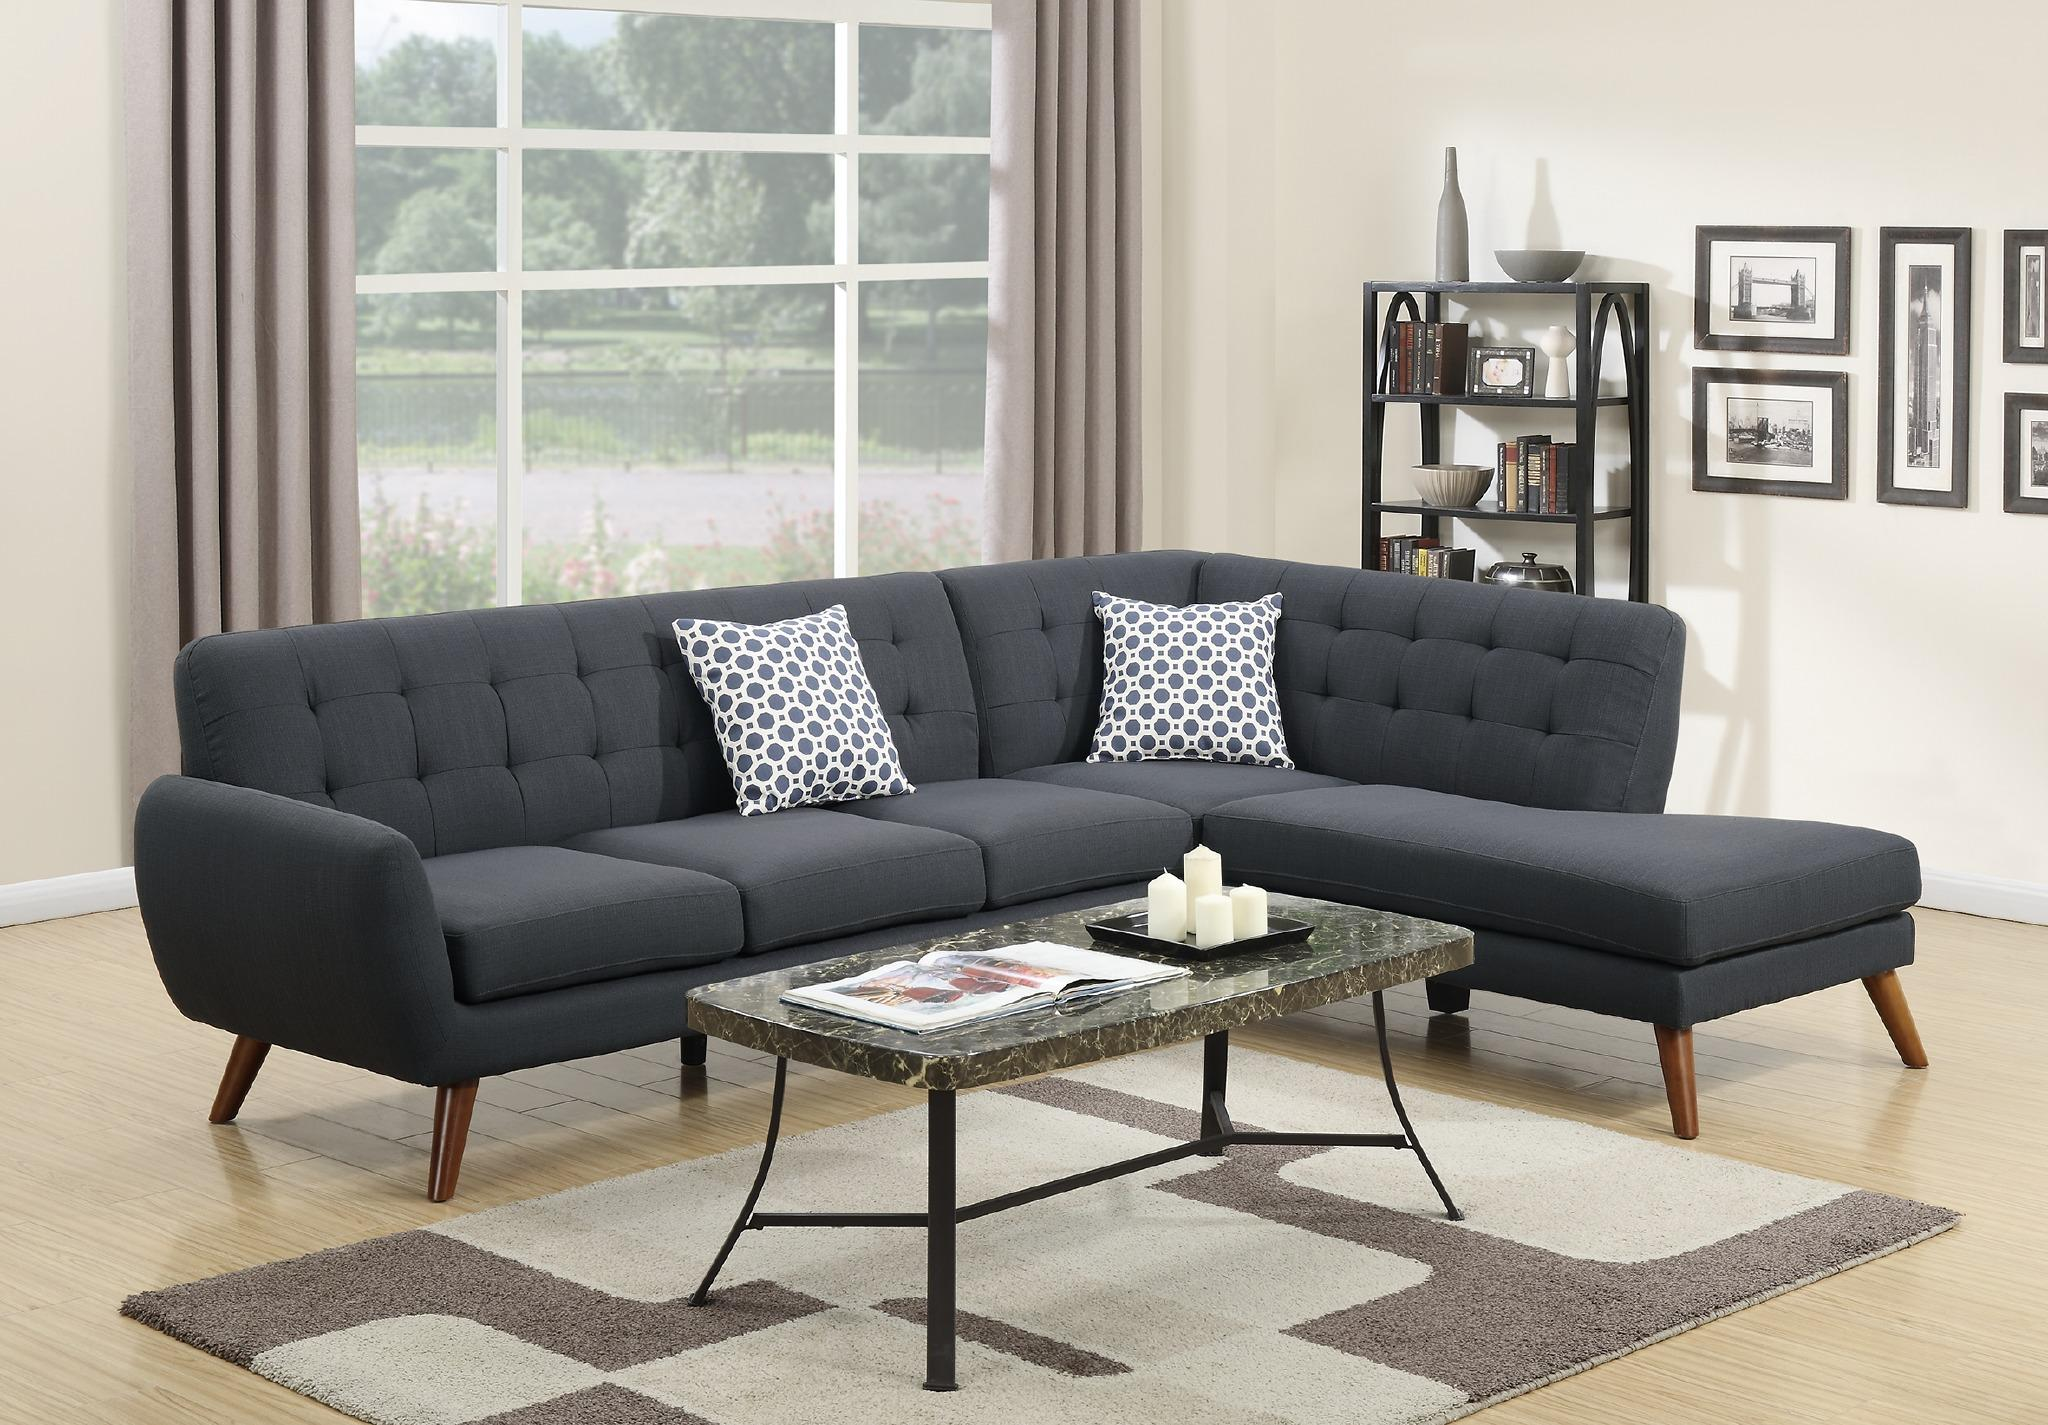 Wayfair Ifin1345 Amazon Poundex F6954 Ash Black Sectional Sofa ~ Modern Black Sectional Sofa